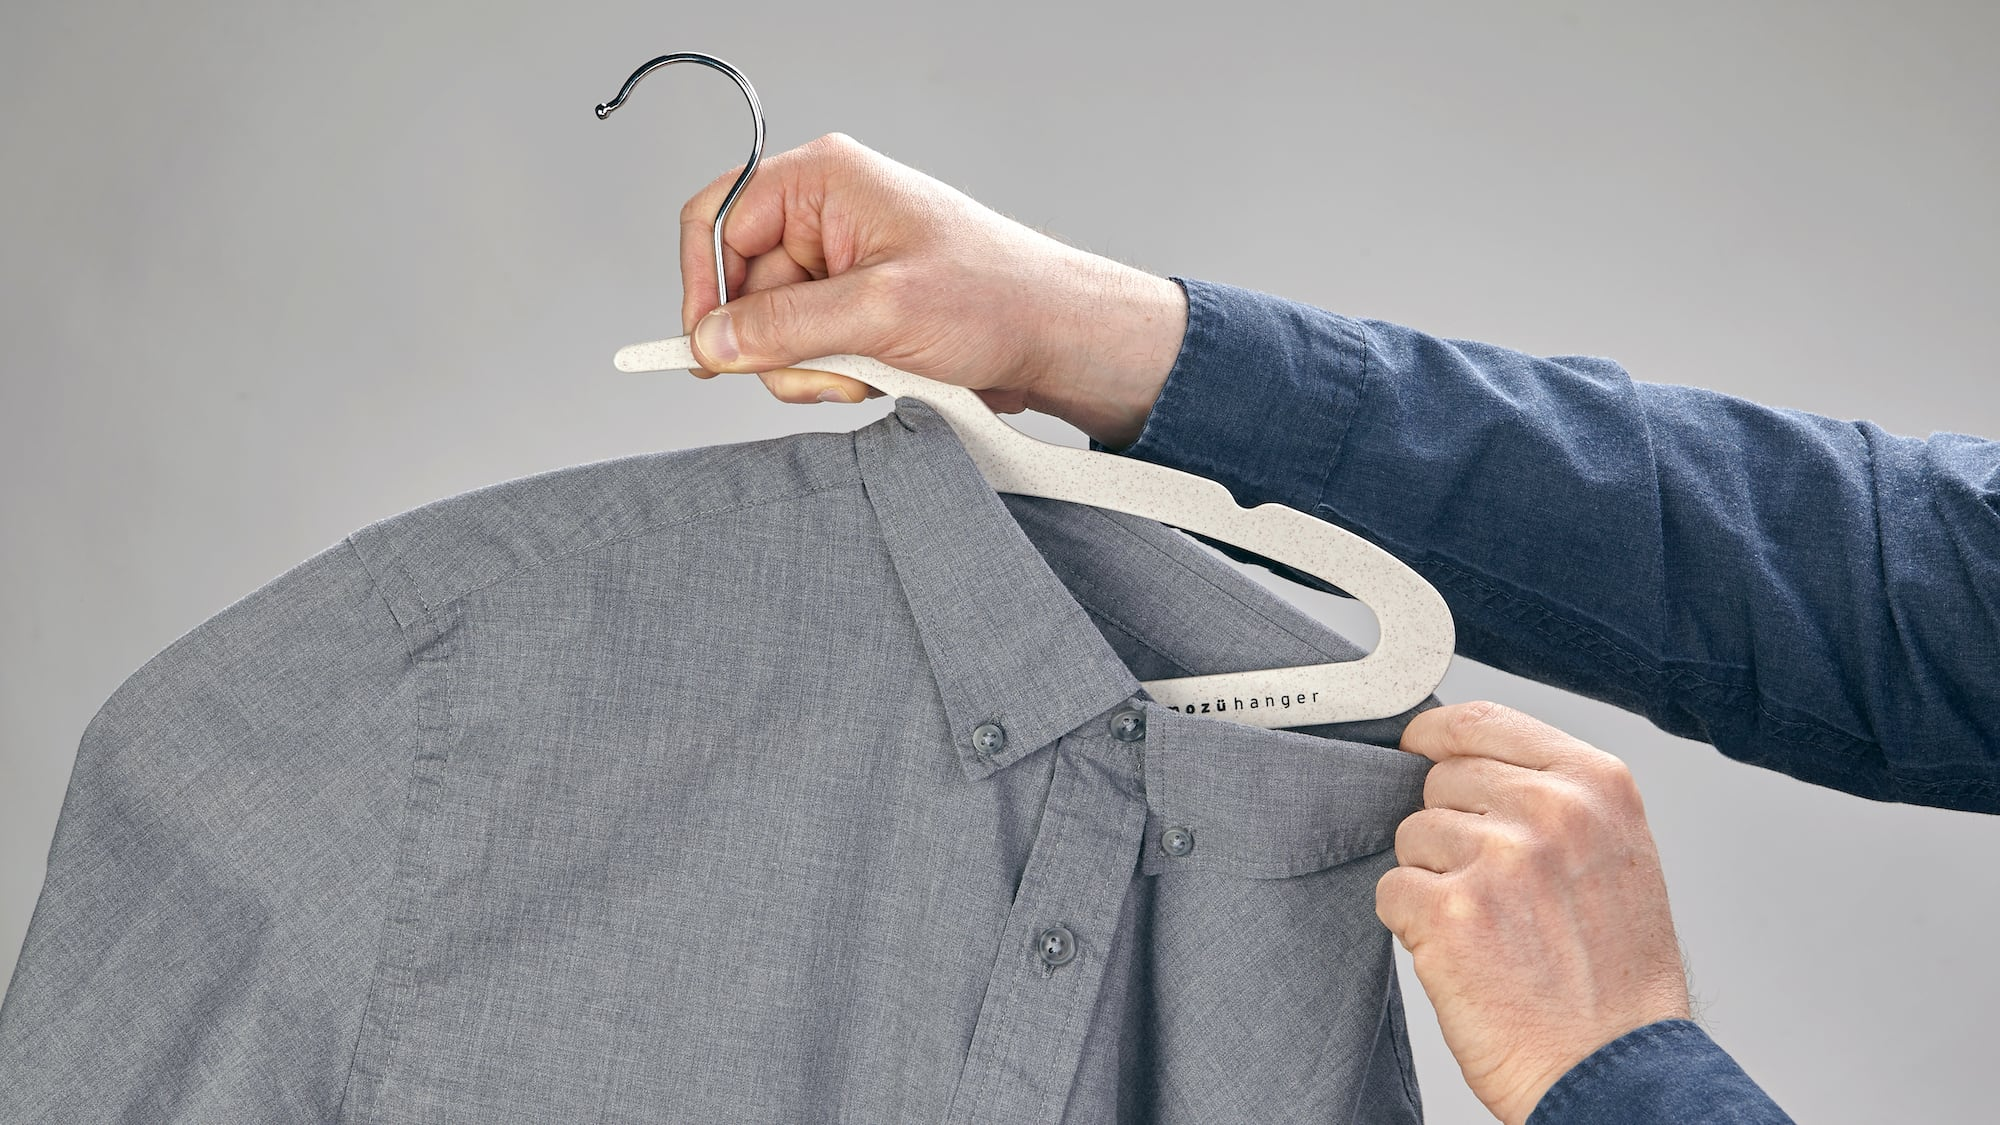 Mozu Hanger Earth-Friendly Hangers have an innovative notch that doesn't stretch collars